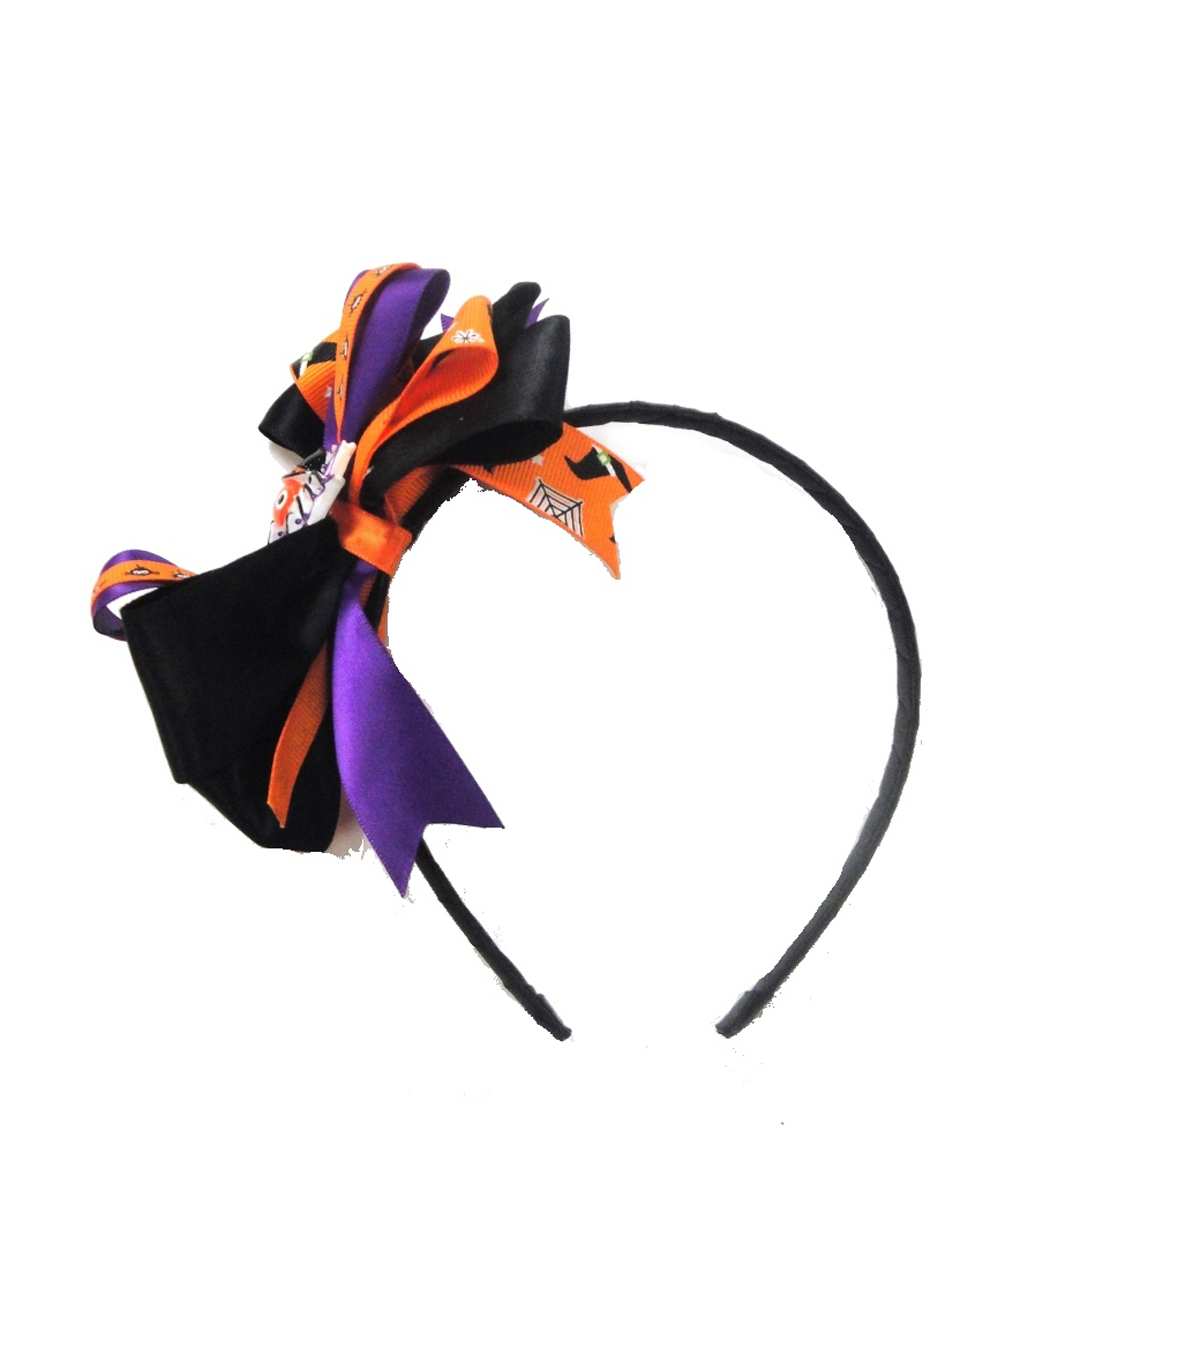 Maker\u0027s Halloween Spider Headband with Ribbons